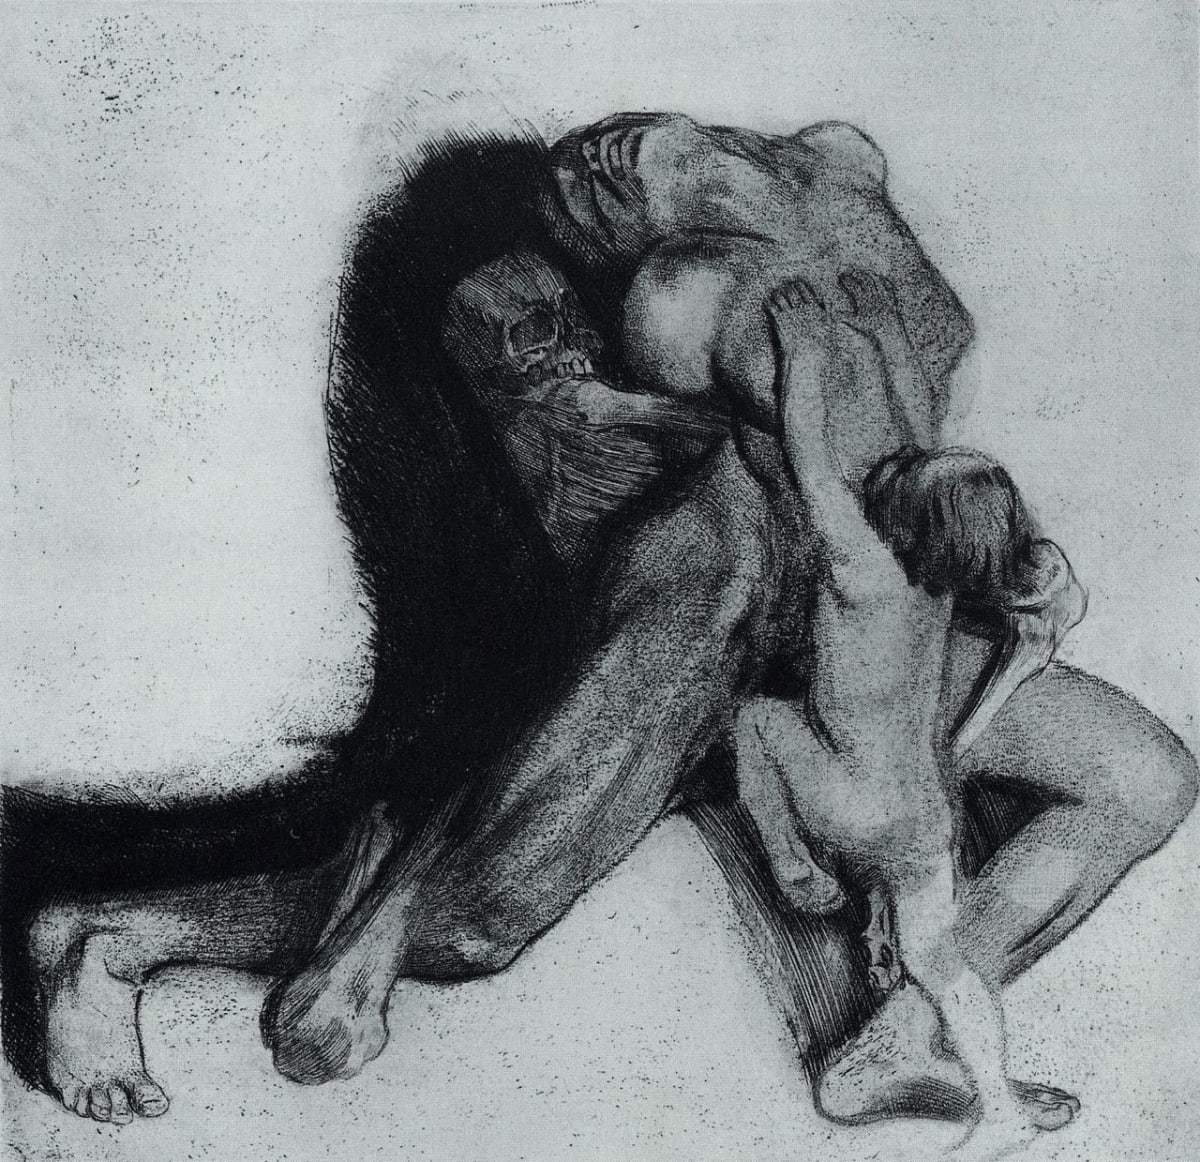 Tod und Frau (Death and the Woman) by Käthe Kollwitz